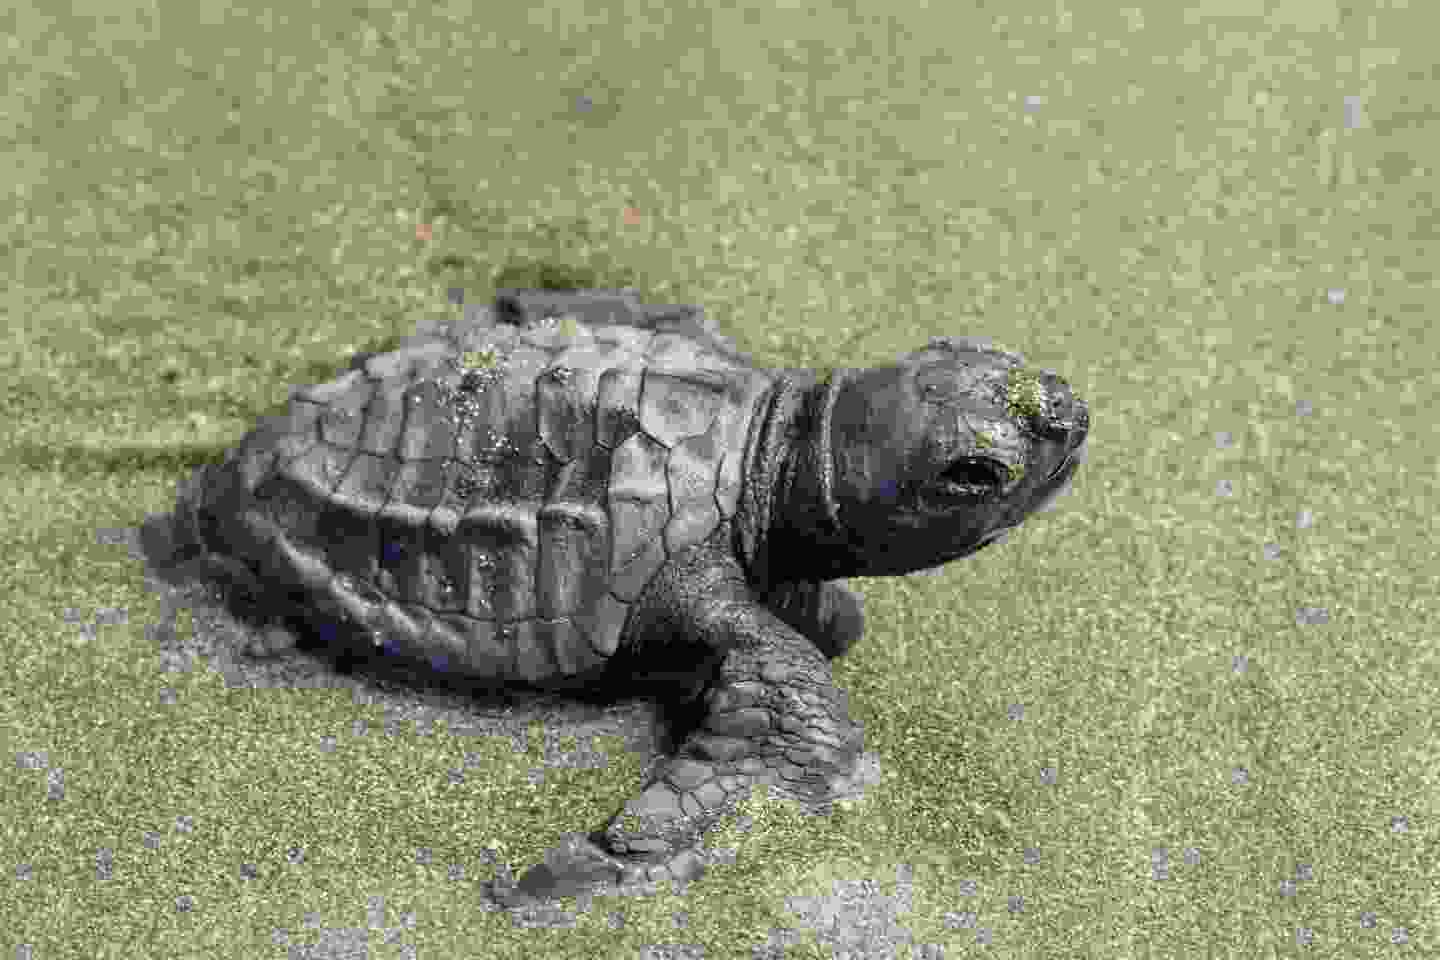 Baby olive ridley sea turtle making its way back into the ocean (Shutterstock)